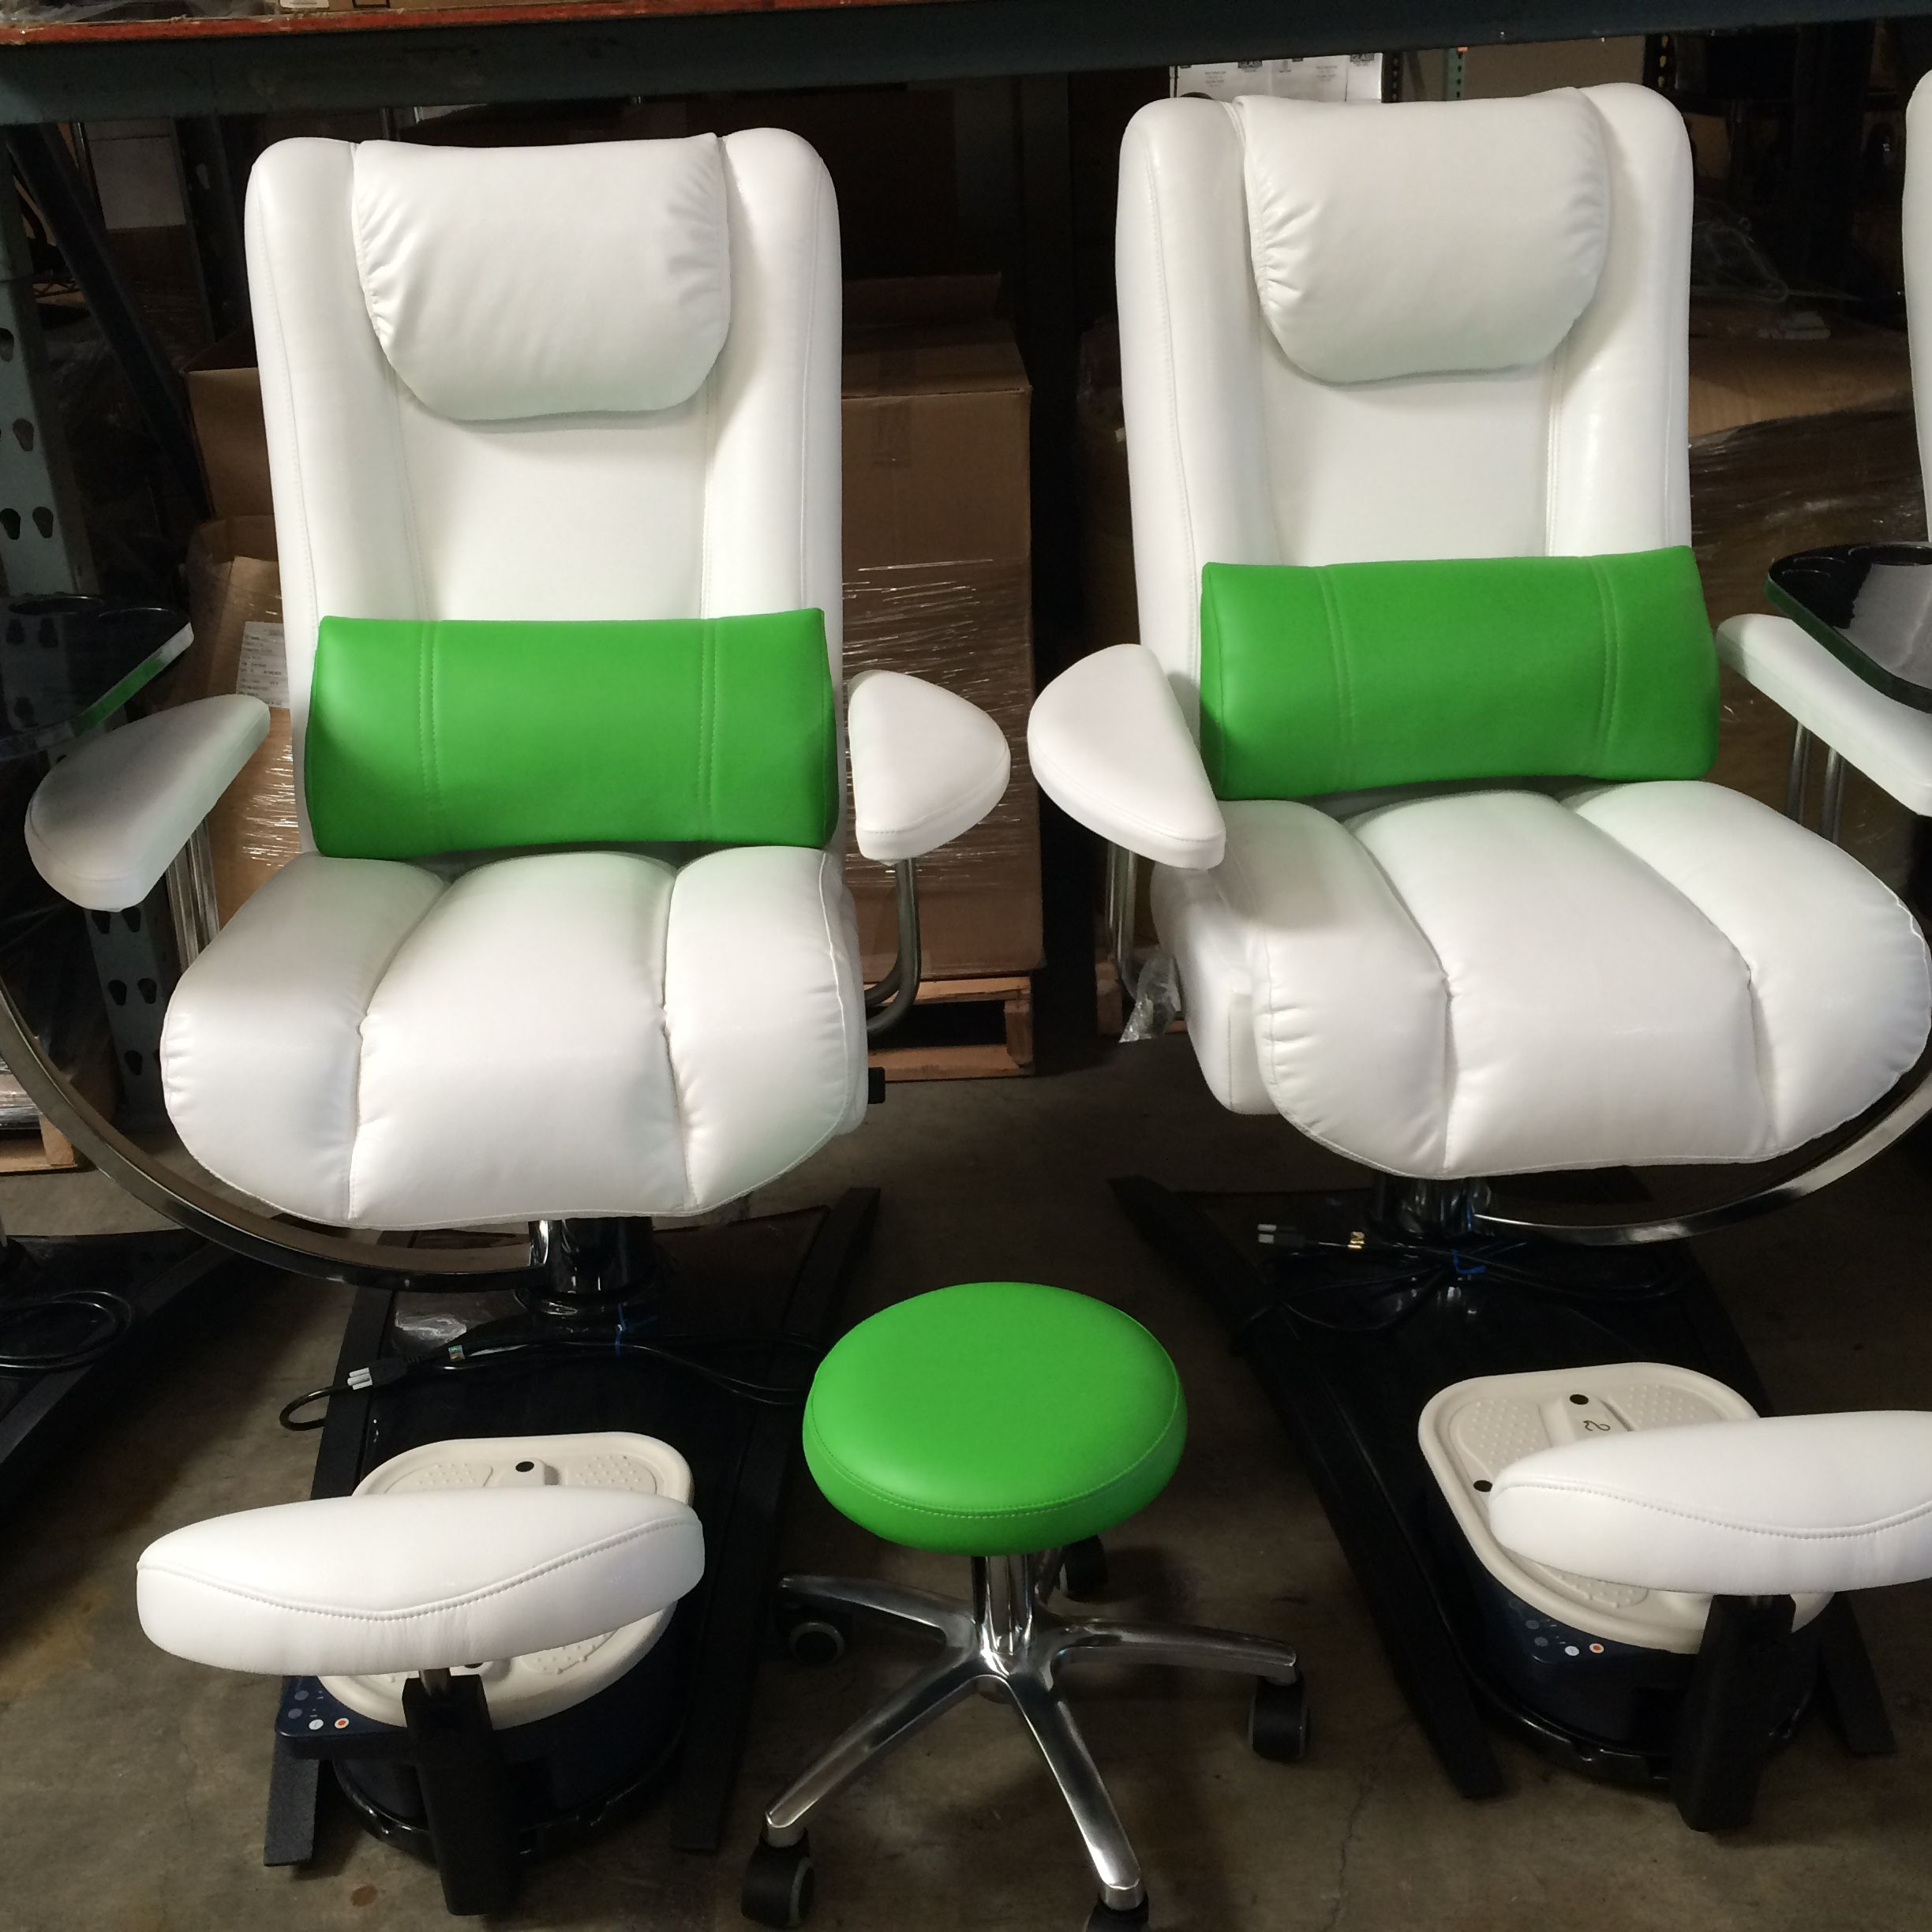 Green Nails In Sherman Oaks California Have Their Own Special Color Combination Of Embrace Chairs Beauty Salon Furniture Salon Furniture Furniture